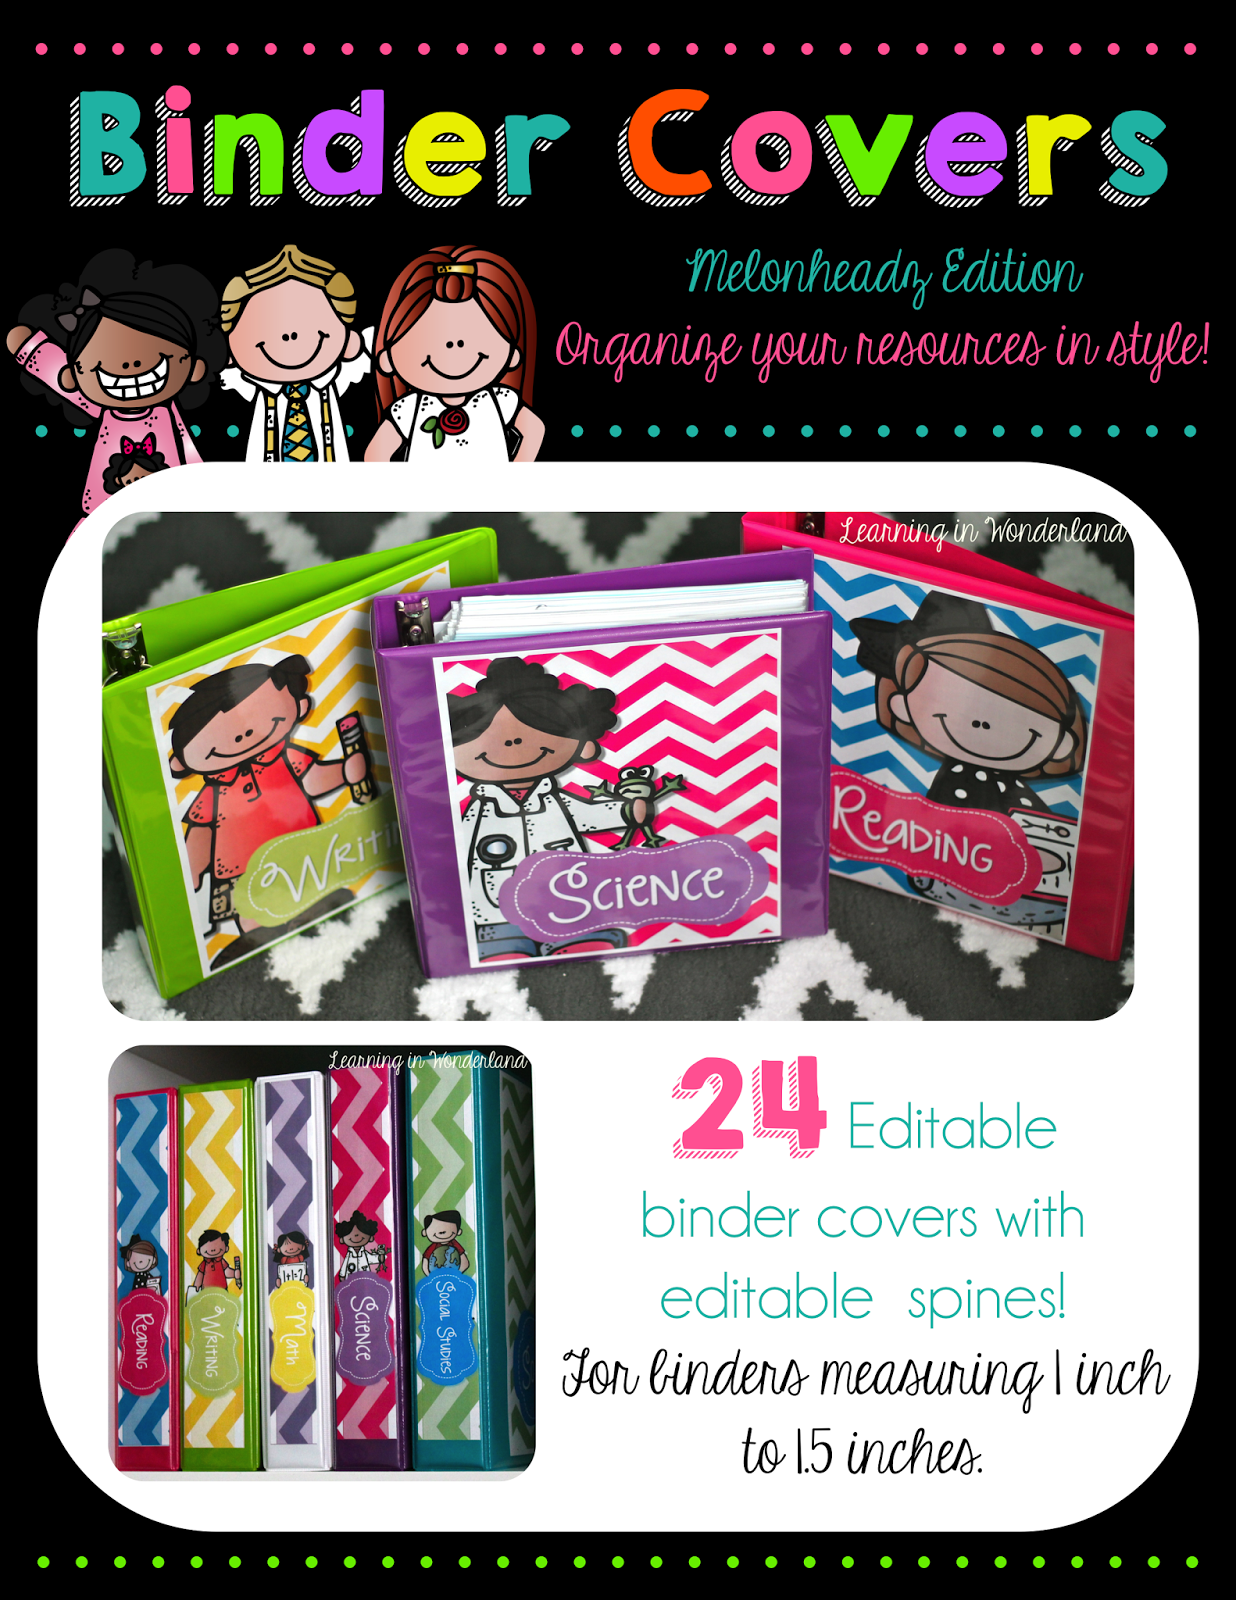 http://www.teacherspayteachers.com/Product/Lets-Get-Organized-Melonheadz-Kids-Edition-Teacher-Toolbox-and-More-1270171